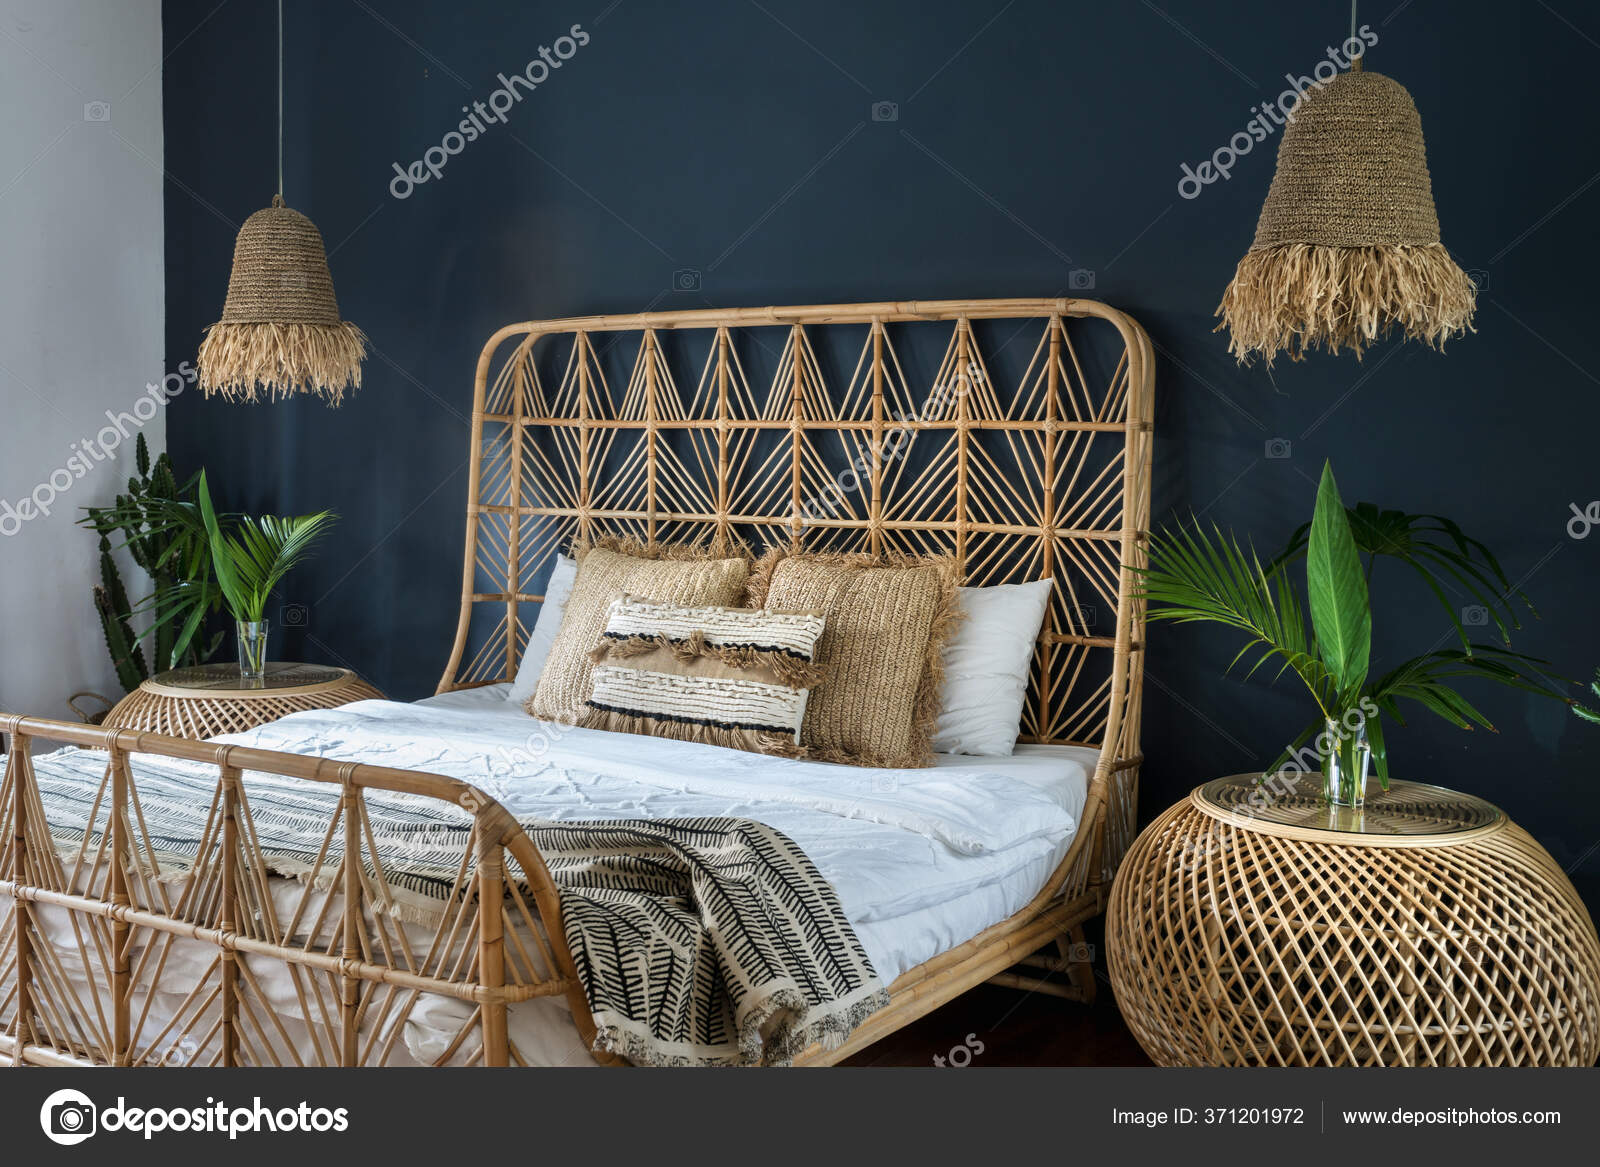 Bamboo Headboard Stock Photos Royalty Free Bamboo Headboard Images Depositphotos